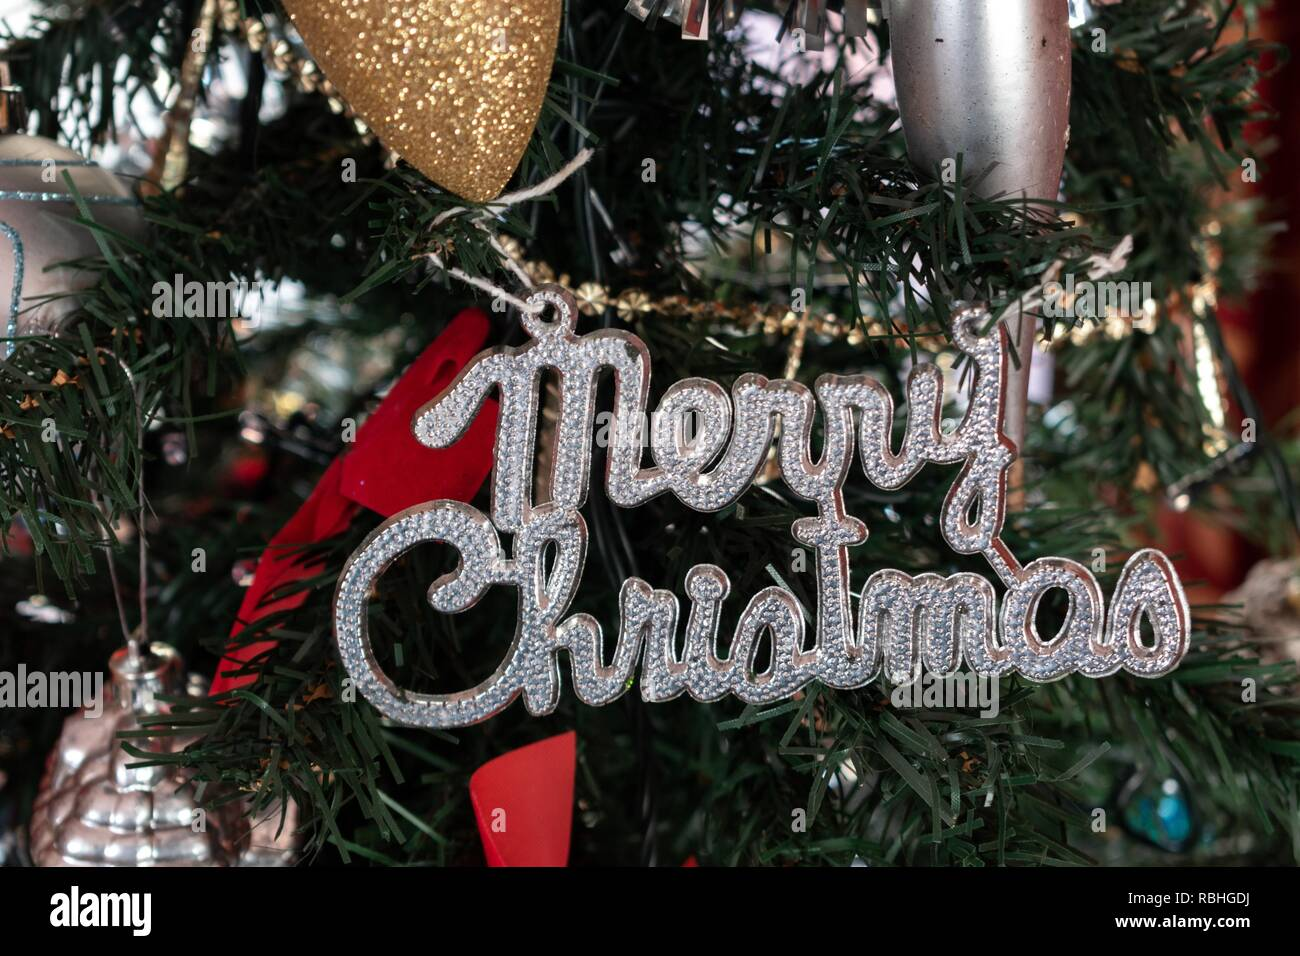 Merry Christmas Ornament Sign.Merry Christmas Hanging Sign On A Christmas Tree Stock Photo